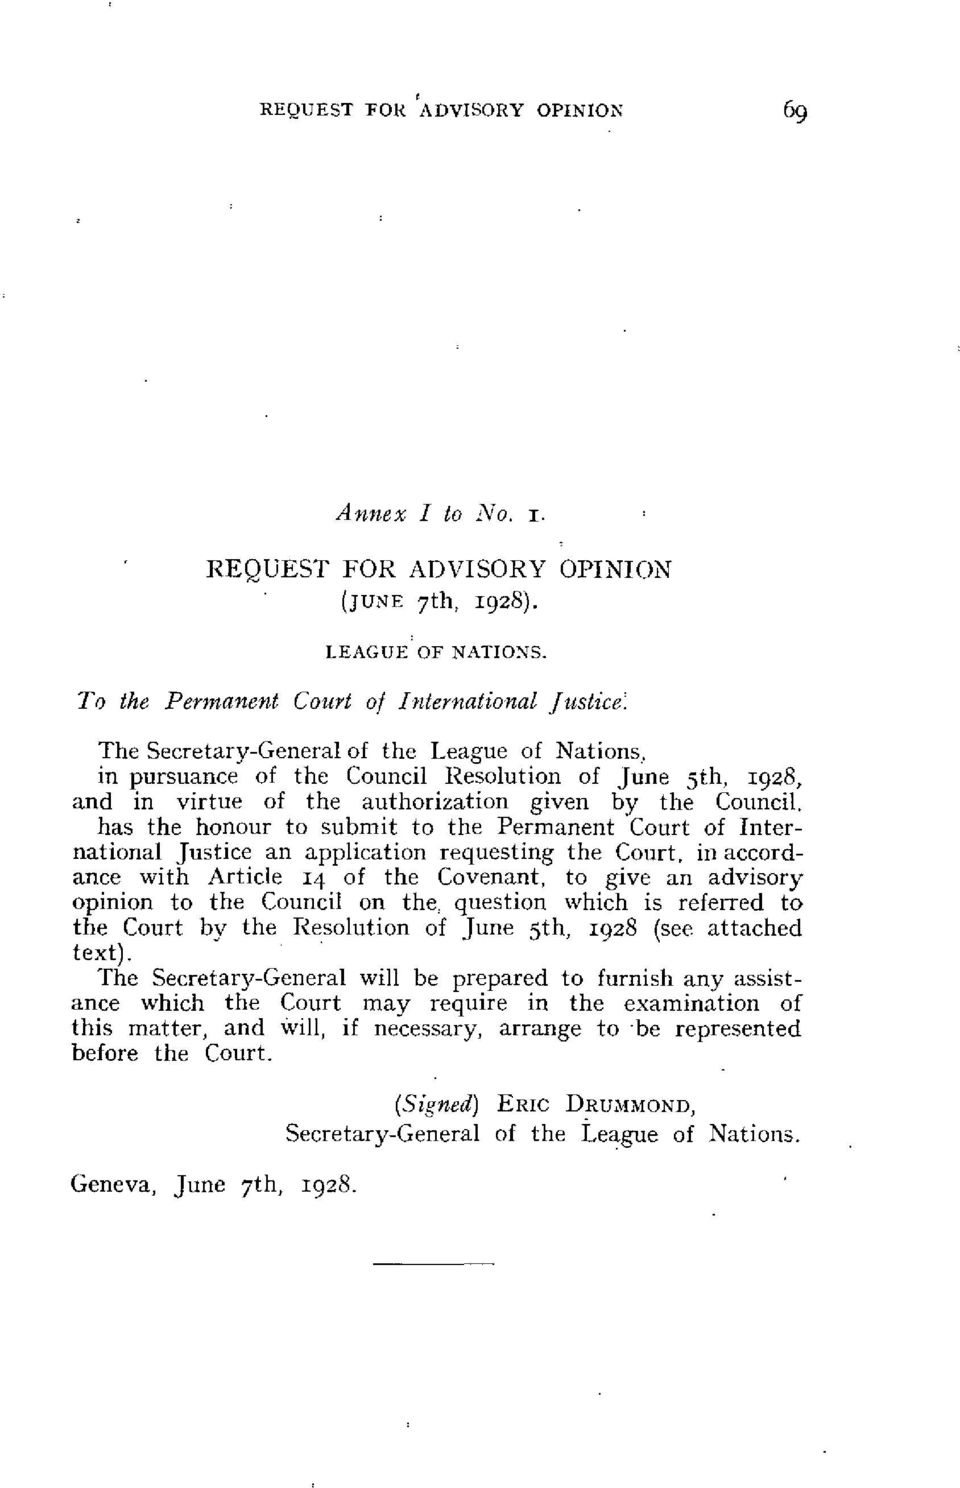 in pursuance of the Couneil Resolution of June 5th, 1928, and in virtue of the authorization given by the Couneil.